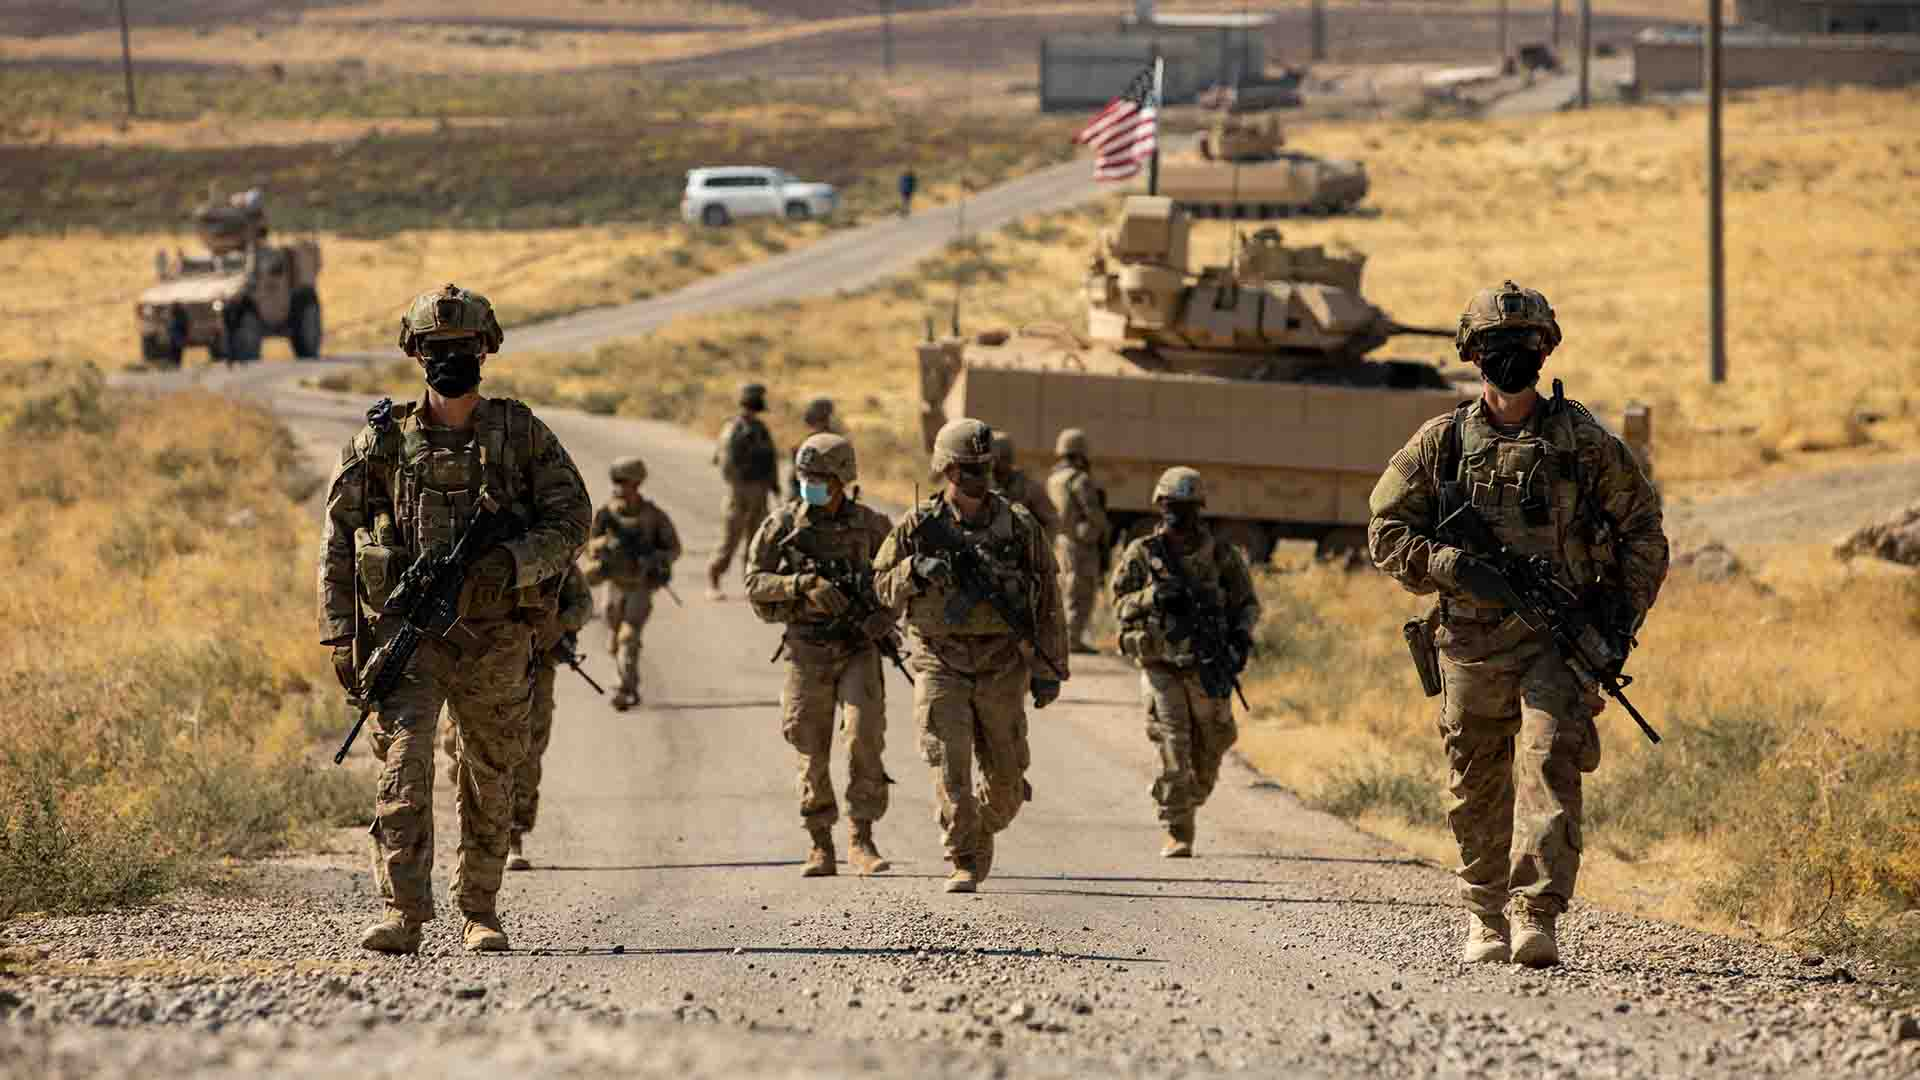 American soldiers with Bradley combat vehicles in northeastern Syria